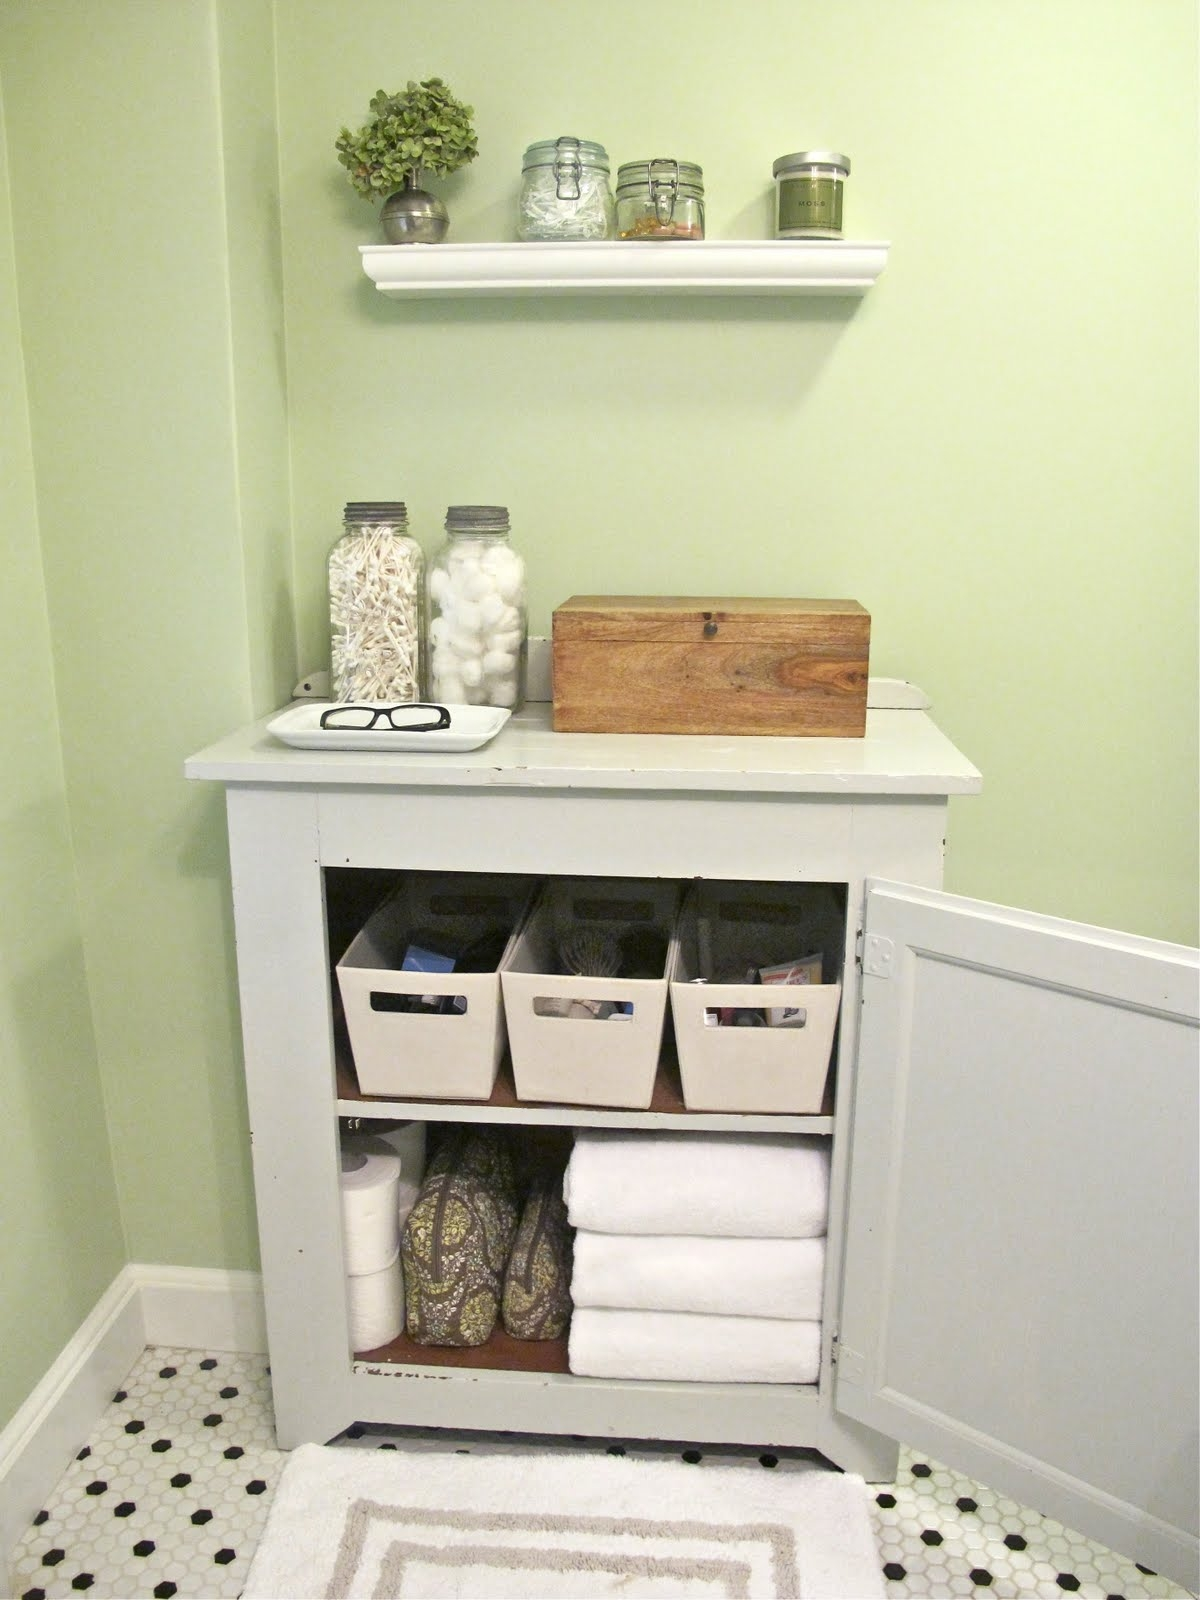 Storage Containers For Bathroom Cabinetsbathroom vanity storage containers healthydetroiter